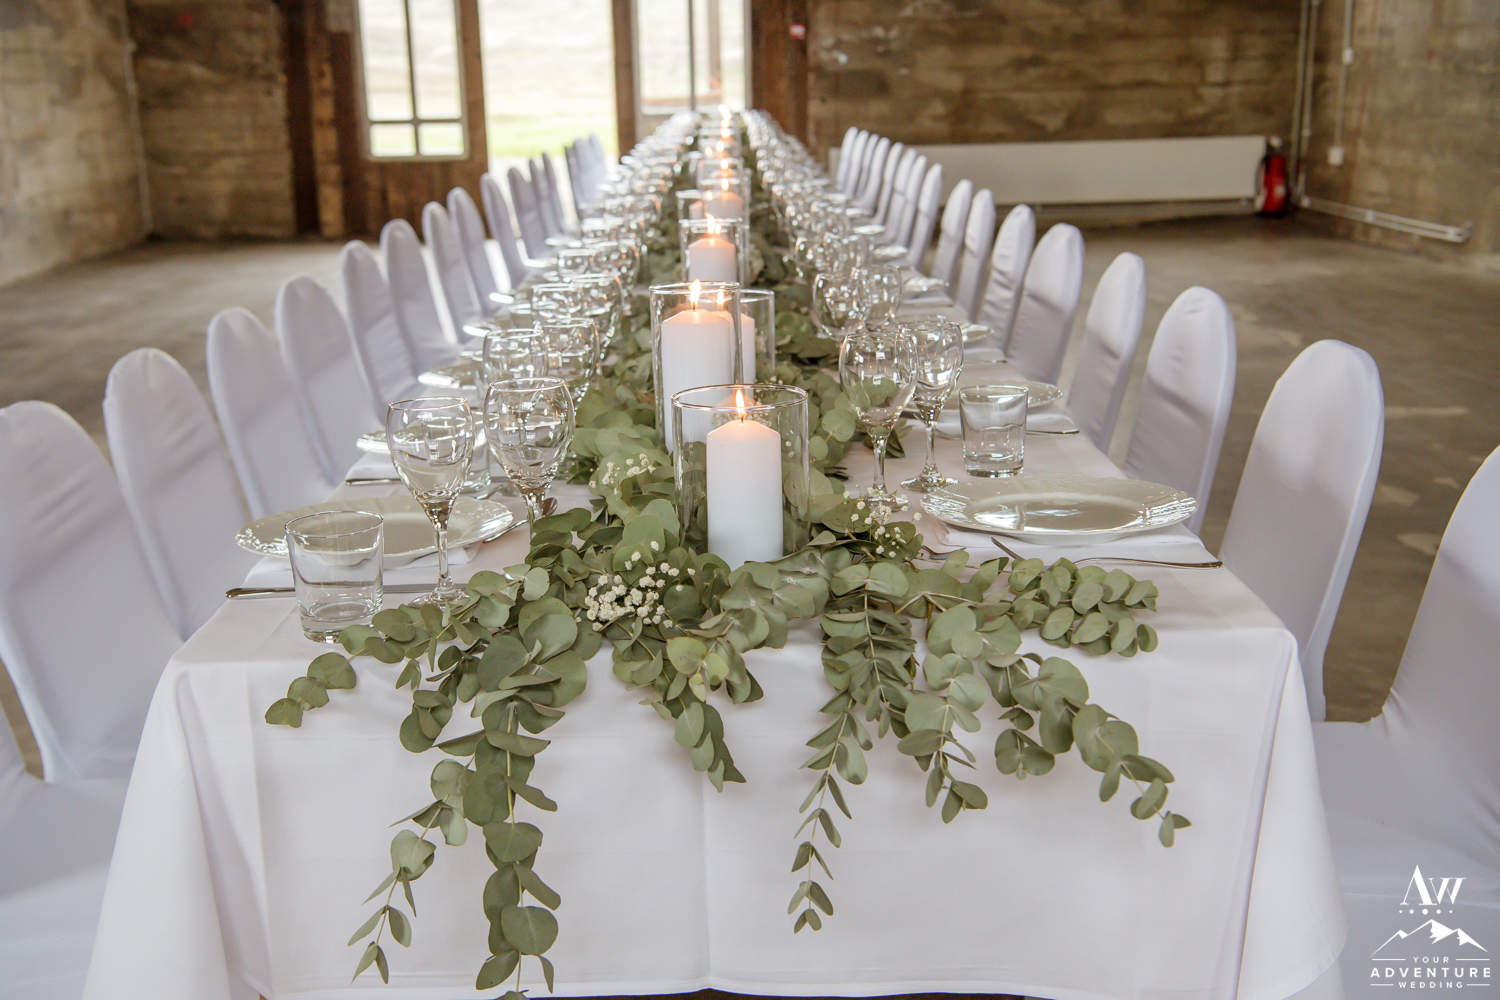 Iceland Wedding Reception Eucalyptus table runner